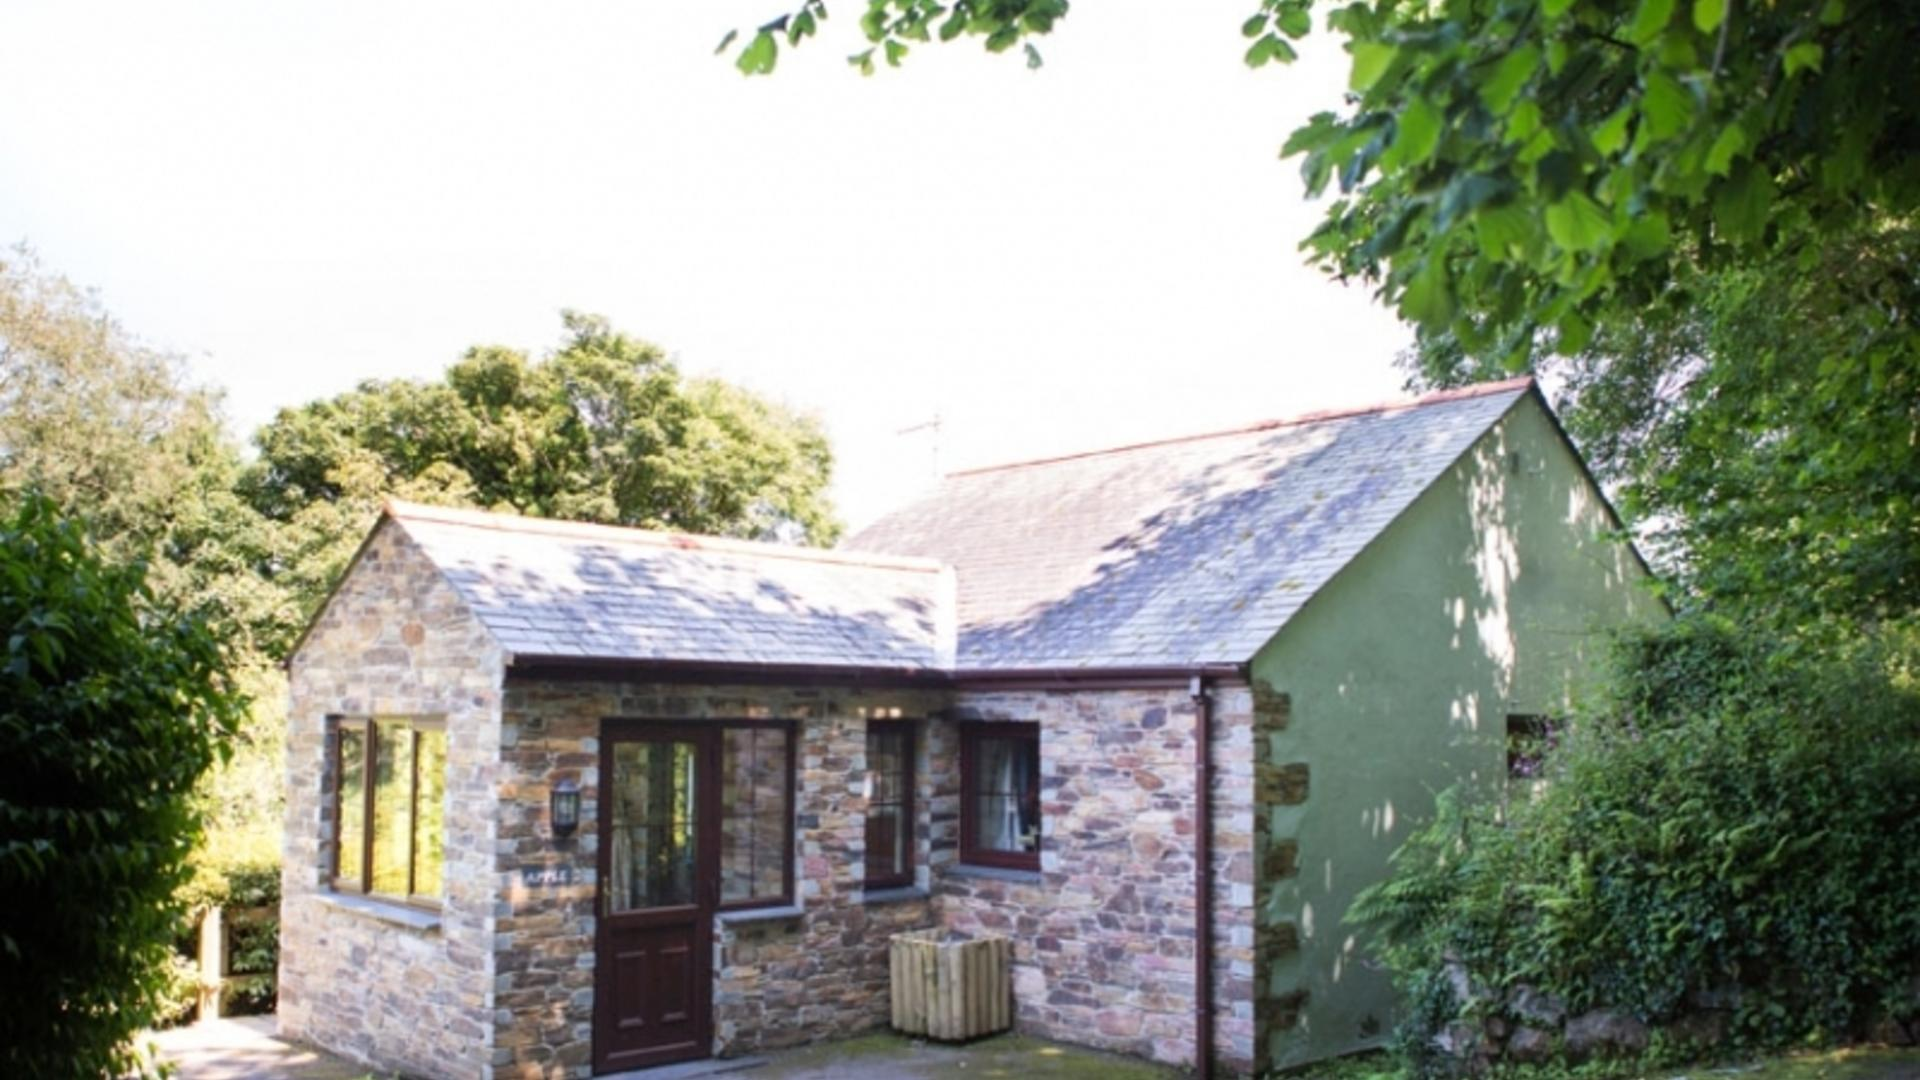 2 Bedroom Cottage in Cornwall, United Kingdom